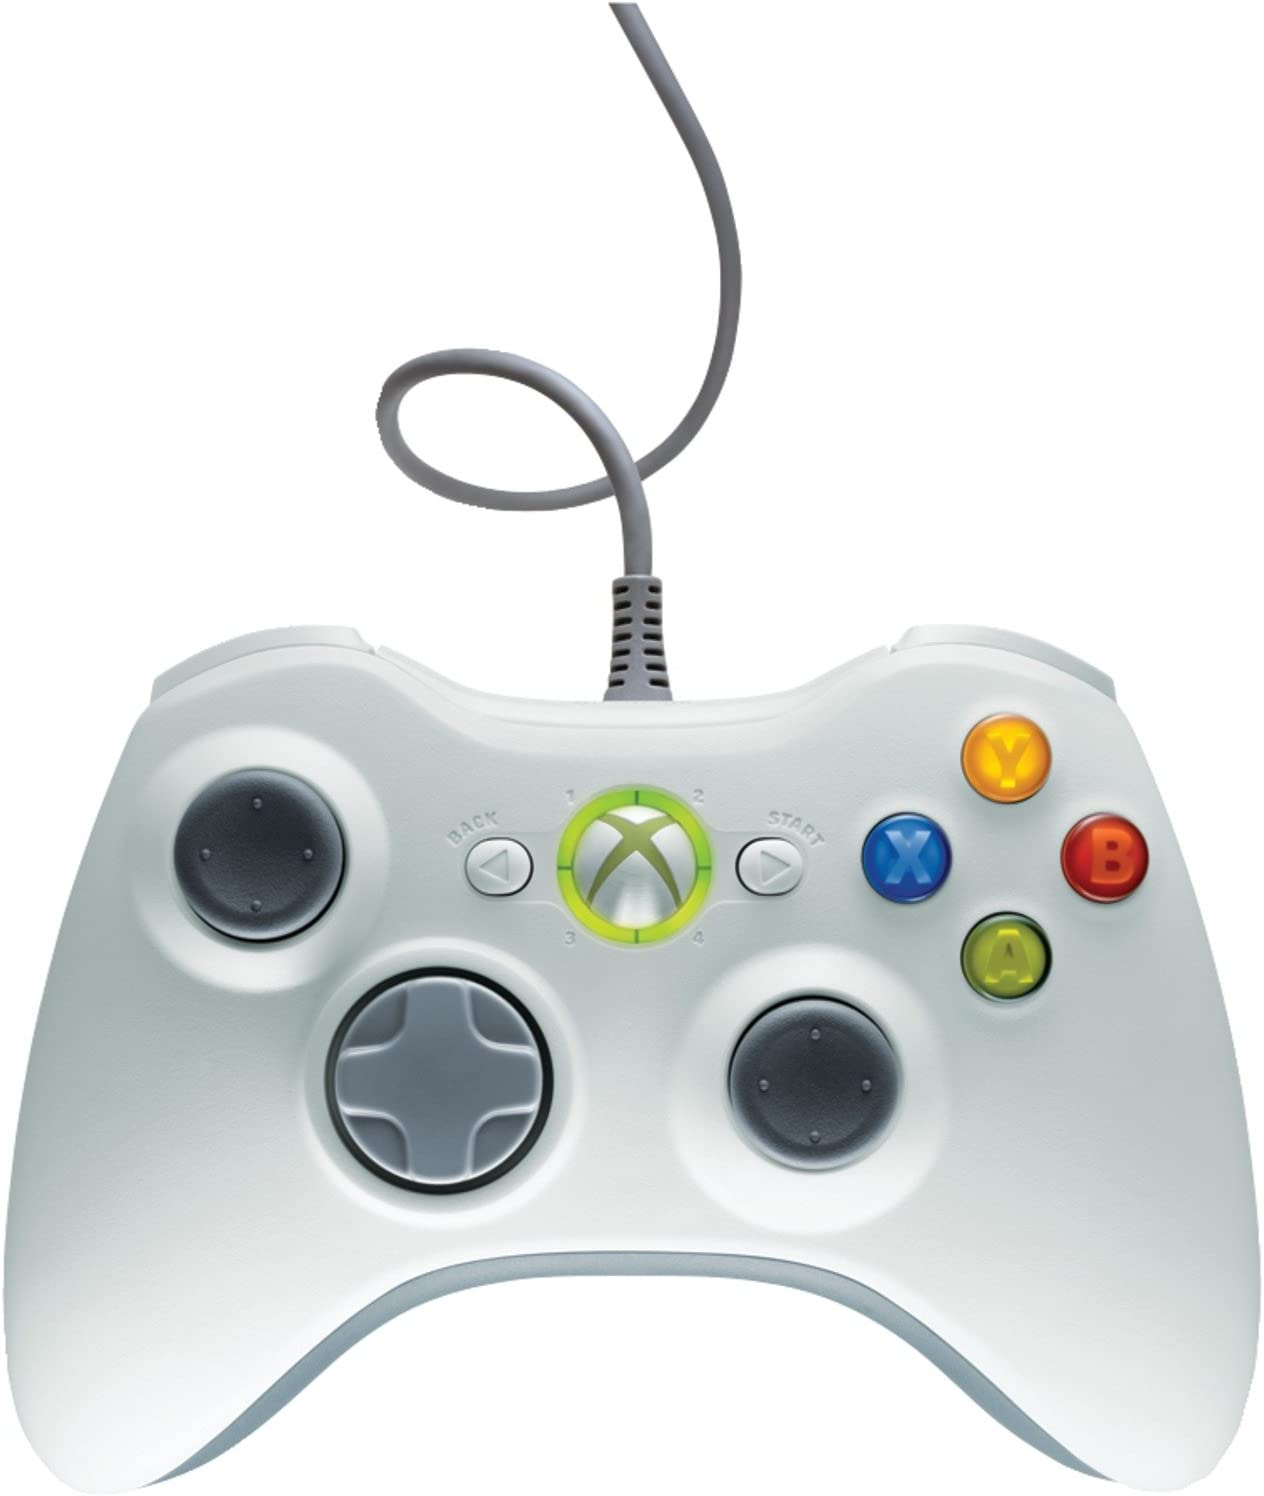 Amazon.com: Xbox 360 Wired Controller: Artist Not Provided: Video Games